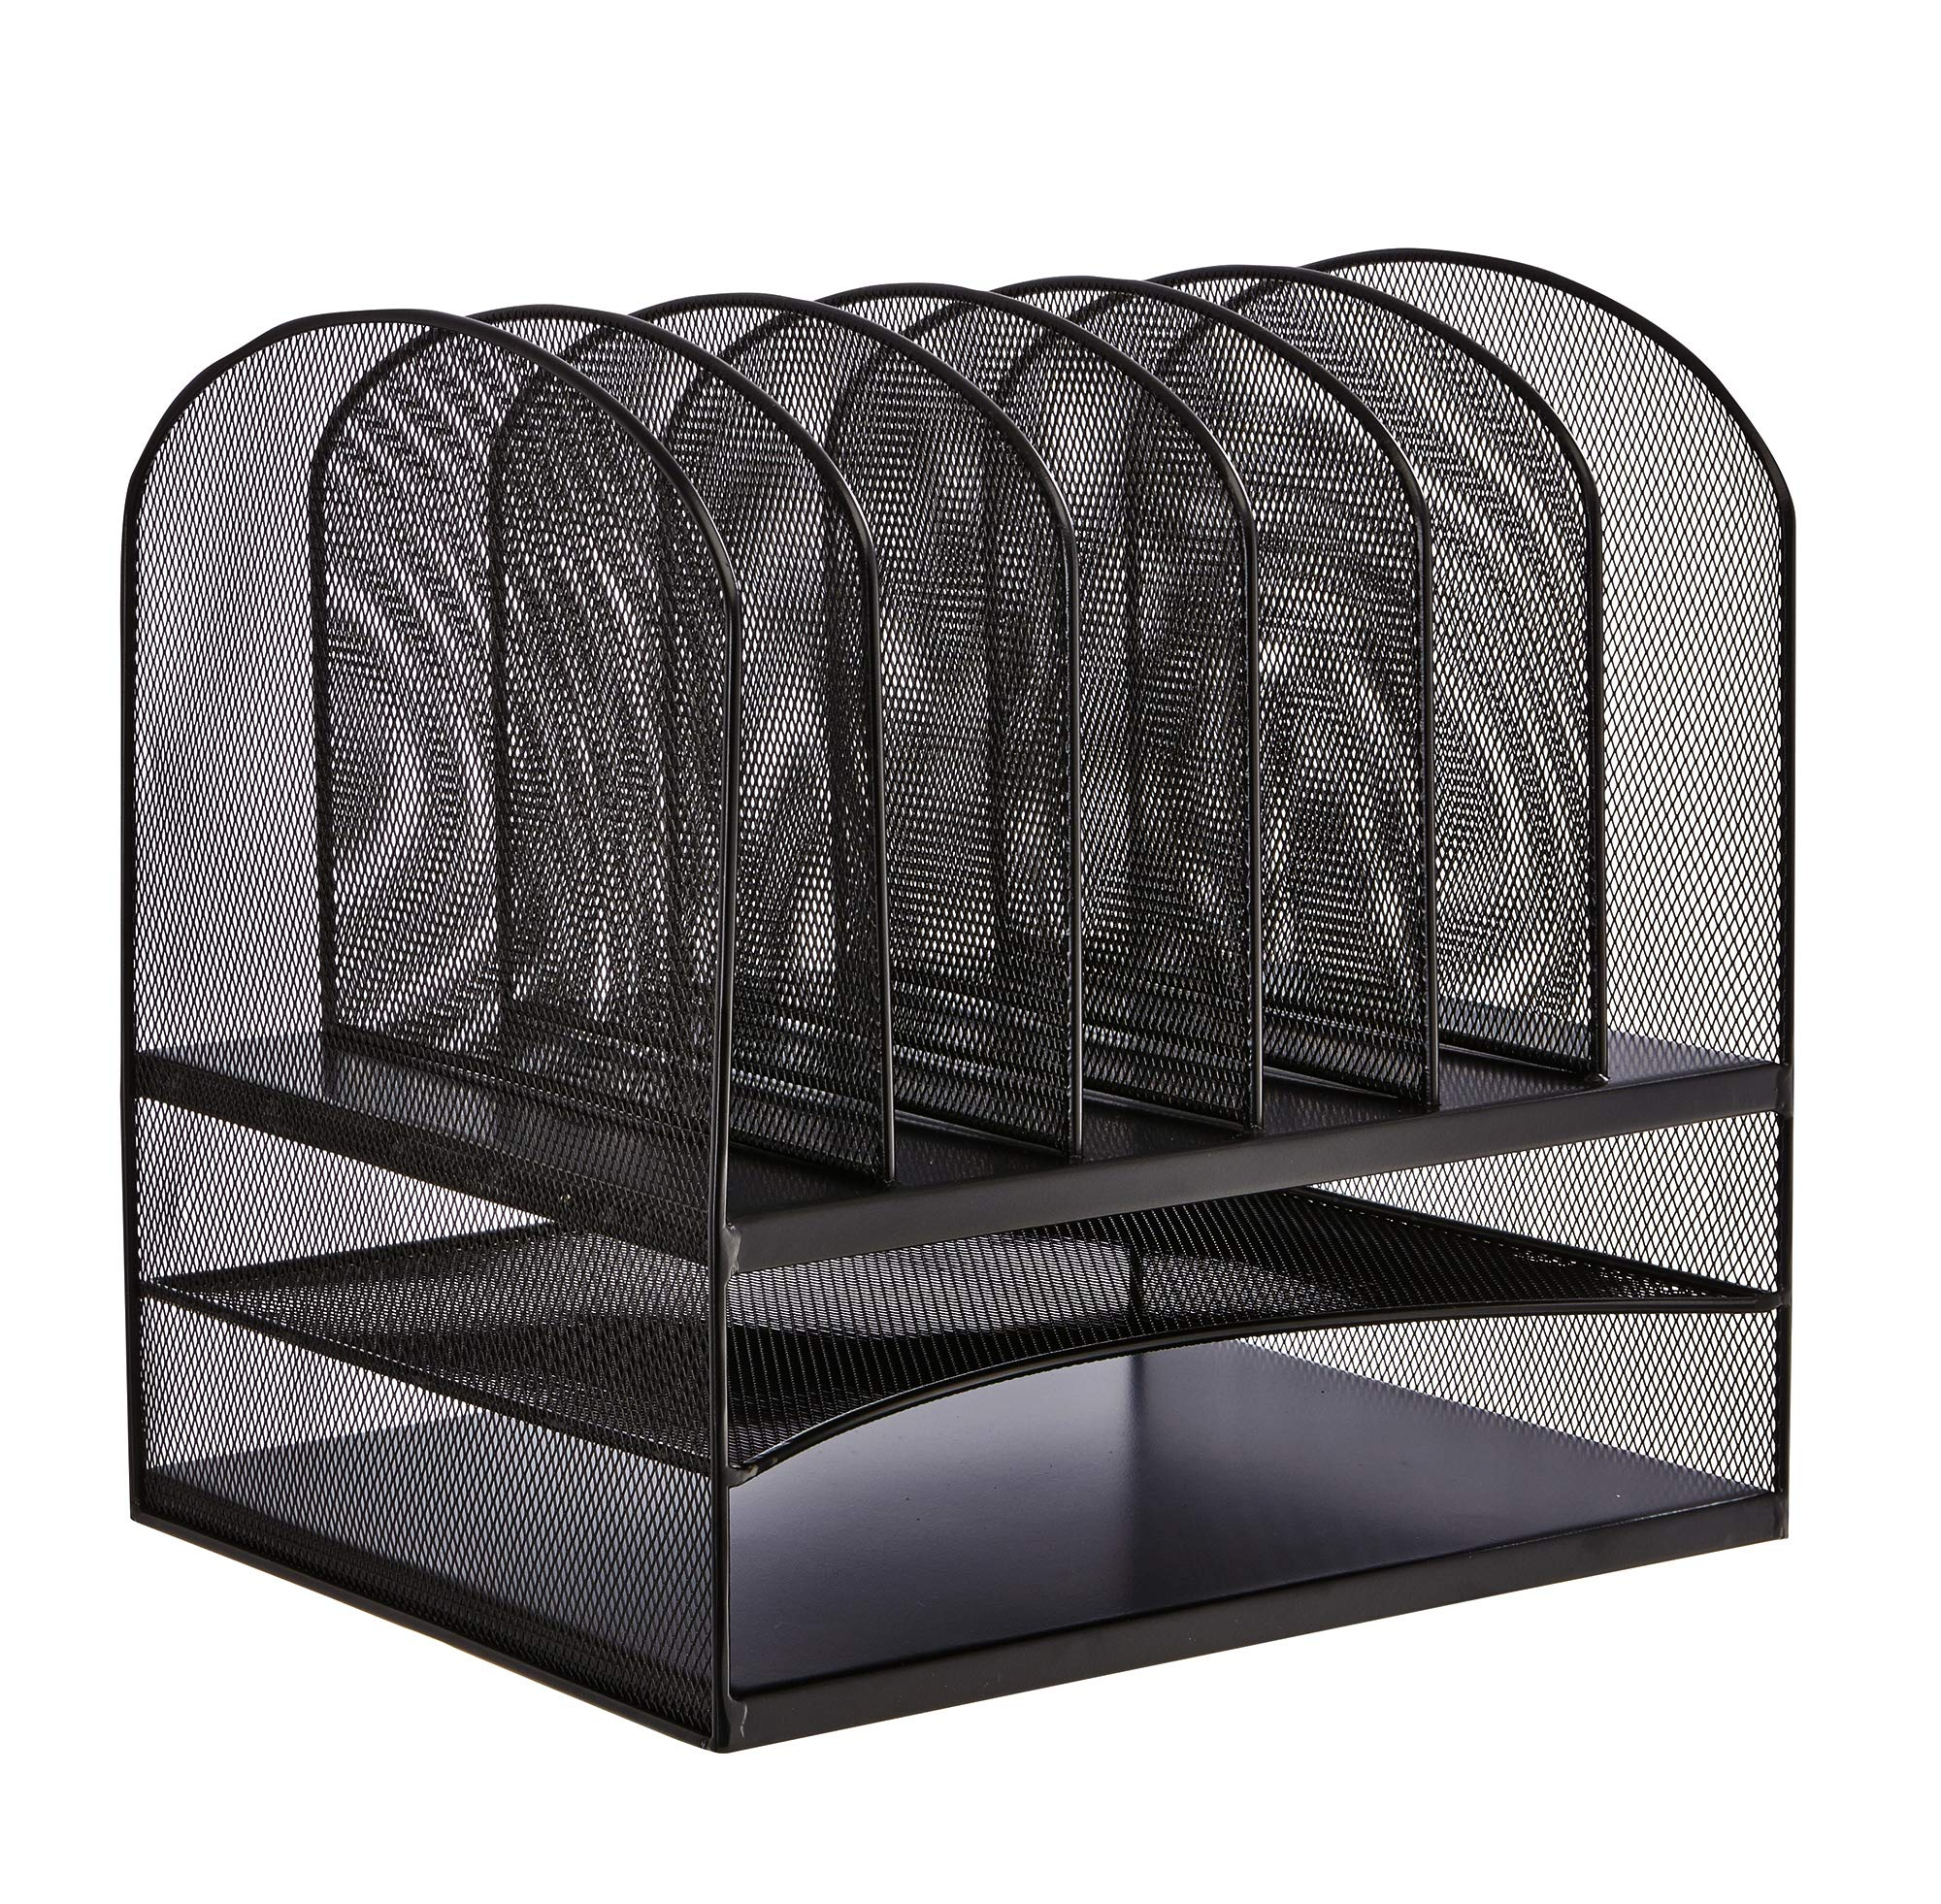 Safco Products Onyx Mesh 2 Tray/6 Sorter Desktop Organizer 3255BL, Black Powder Coat Finish, Durable Steel Mesh Construction, Space-saving Functionality by Safco Products